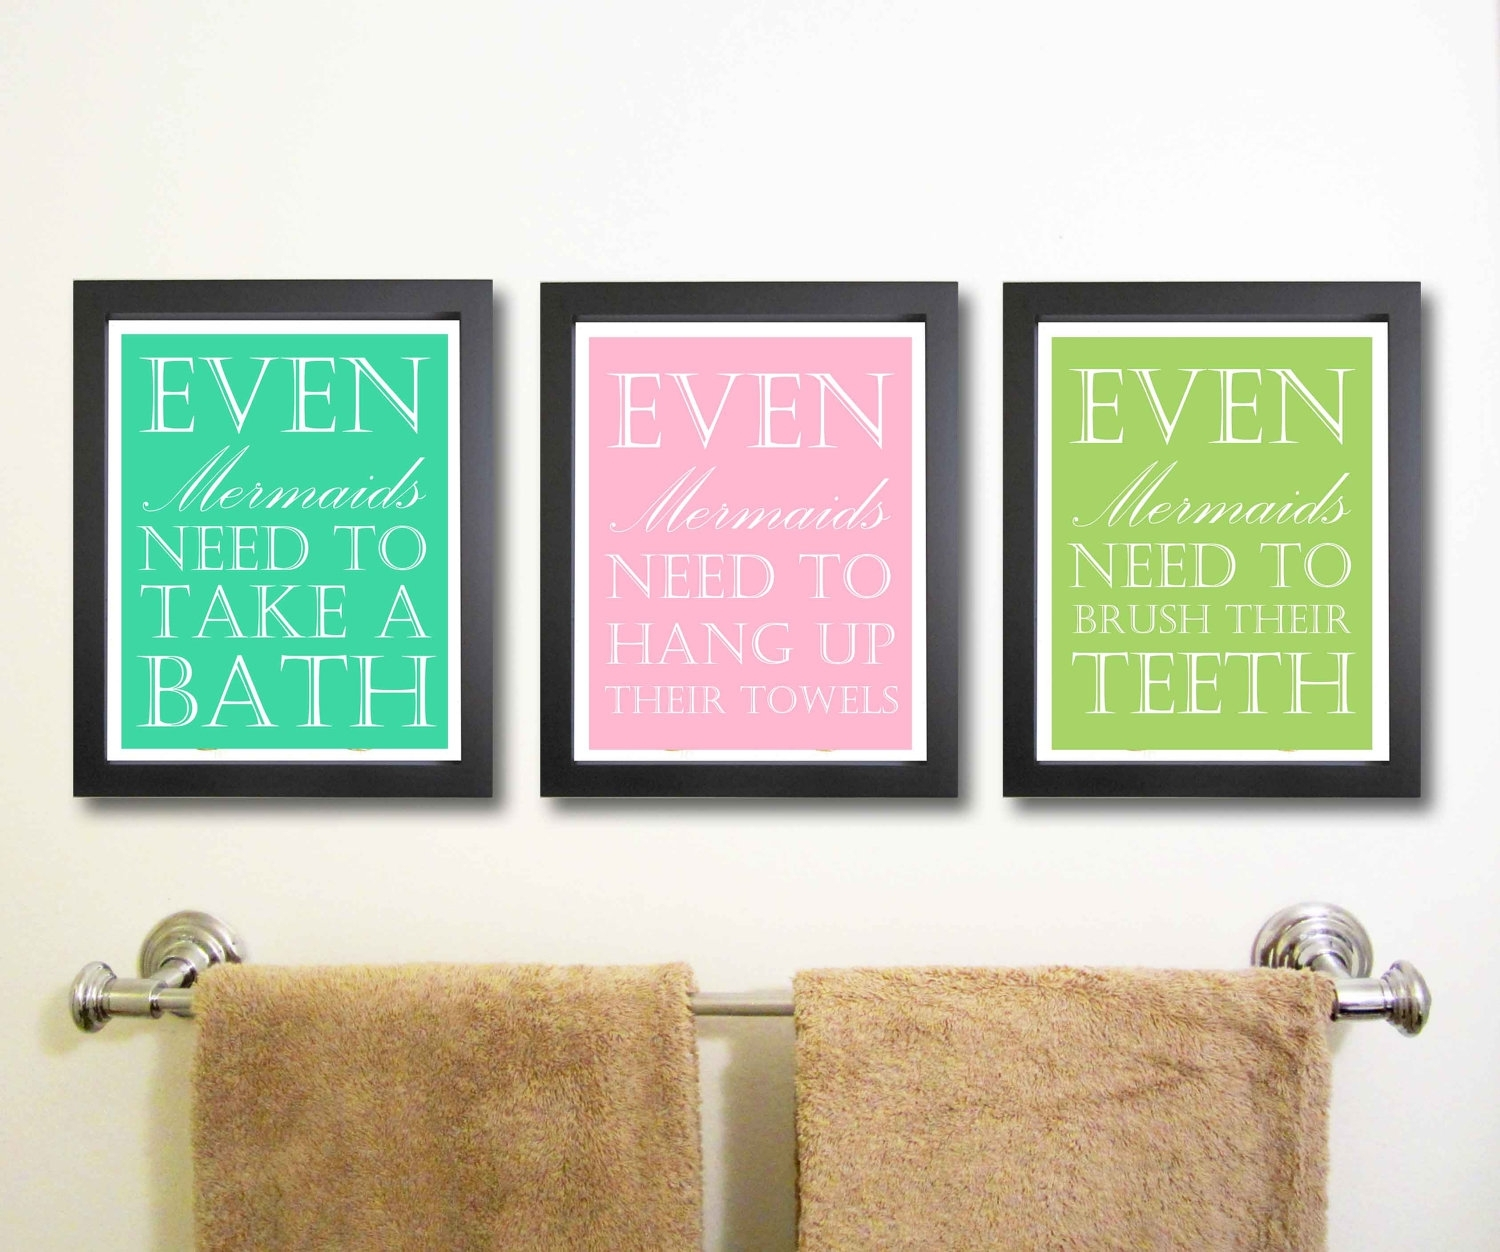 Amazing Of Amazing Bathroom Art Decor Guest Bathroom Wall #2585 Throughout Most Recently Released Bathroom Wall Art Decors (View 1 of 15)